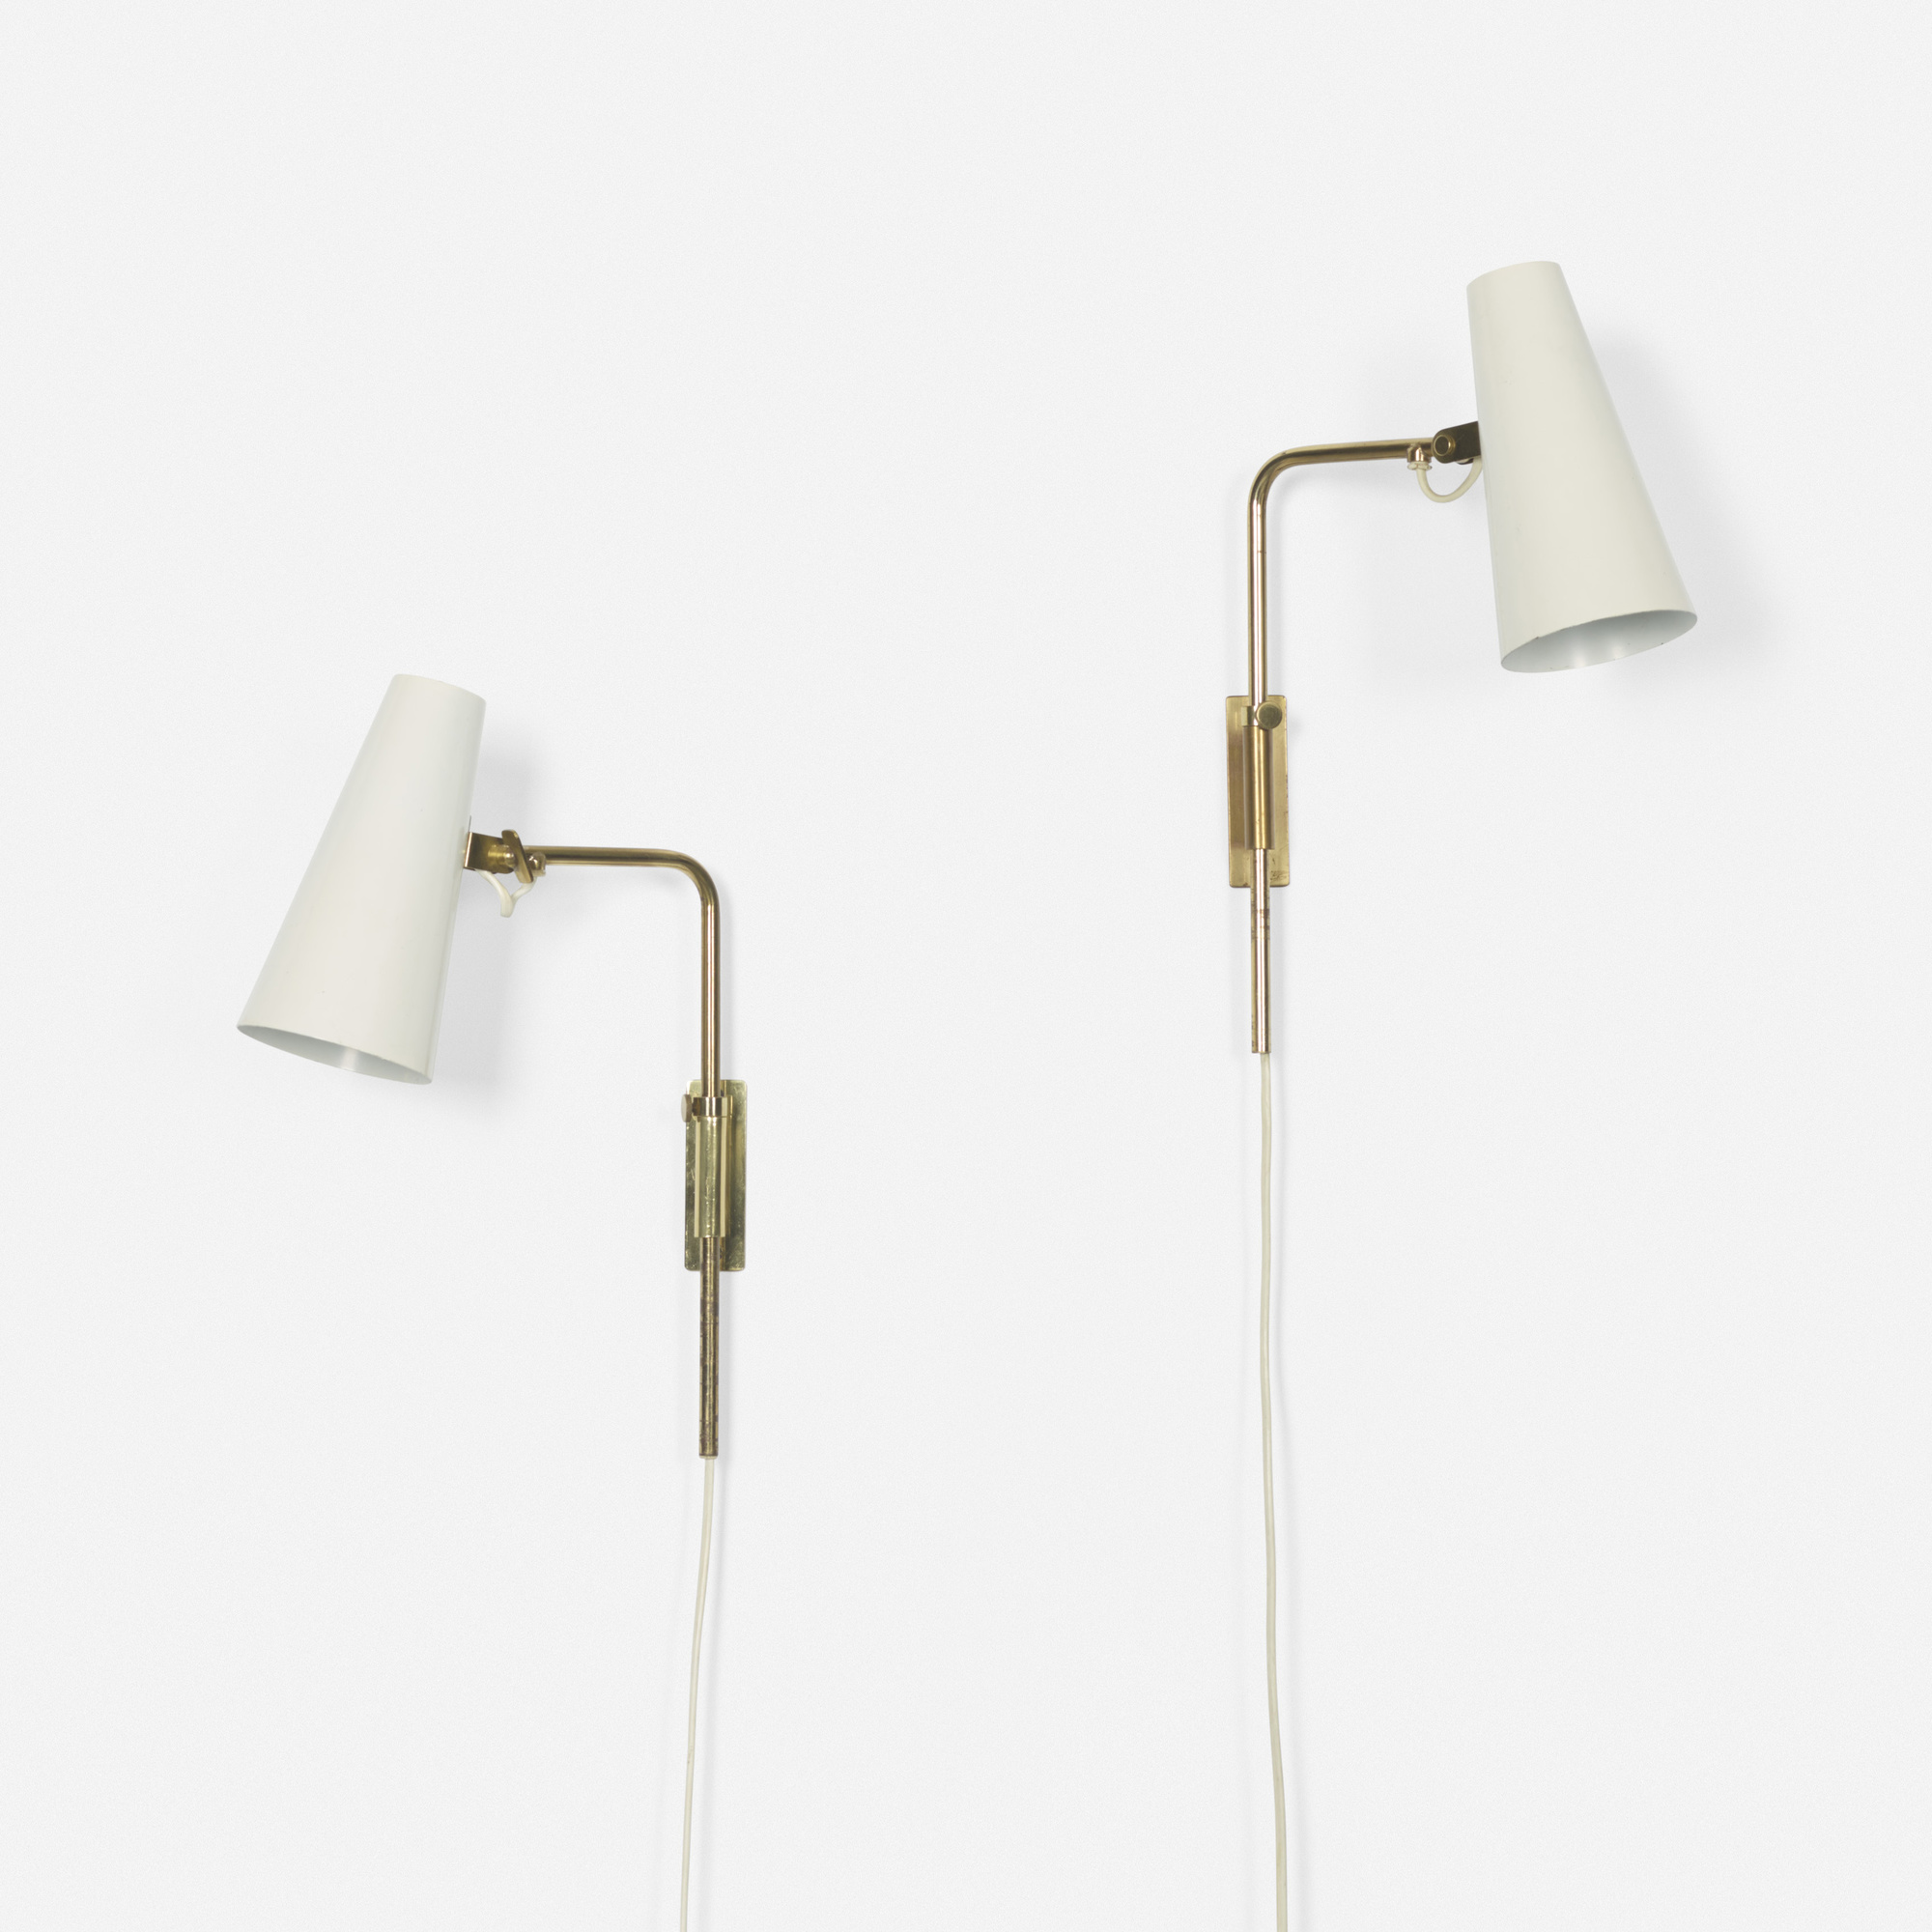 212: Paavo Tynell / sconces model 9459, pair (1 of 1)